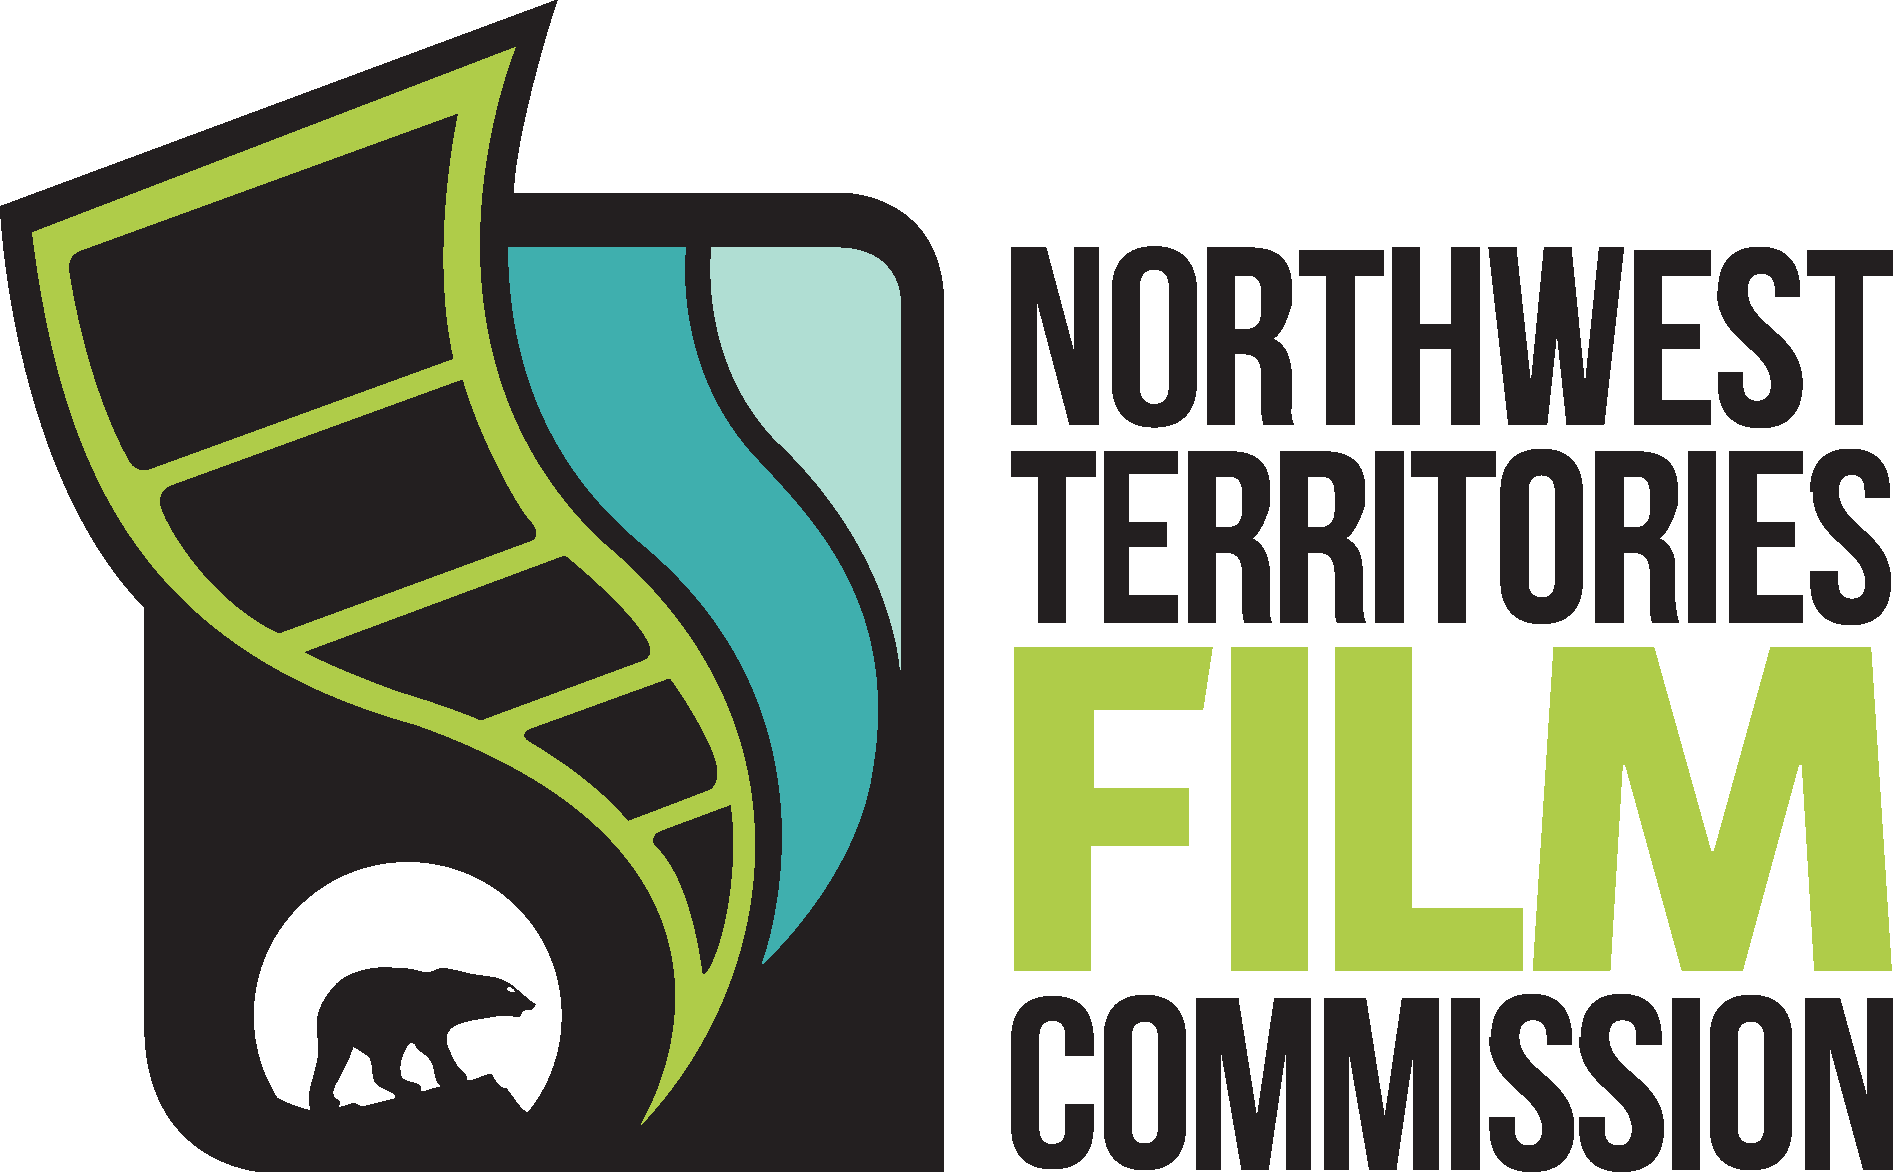 Northwest Territories Film Commission logo